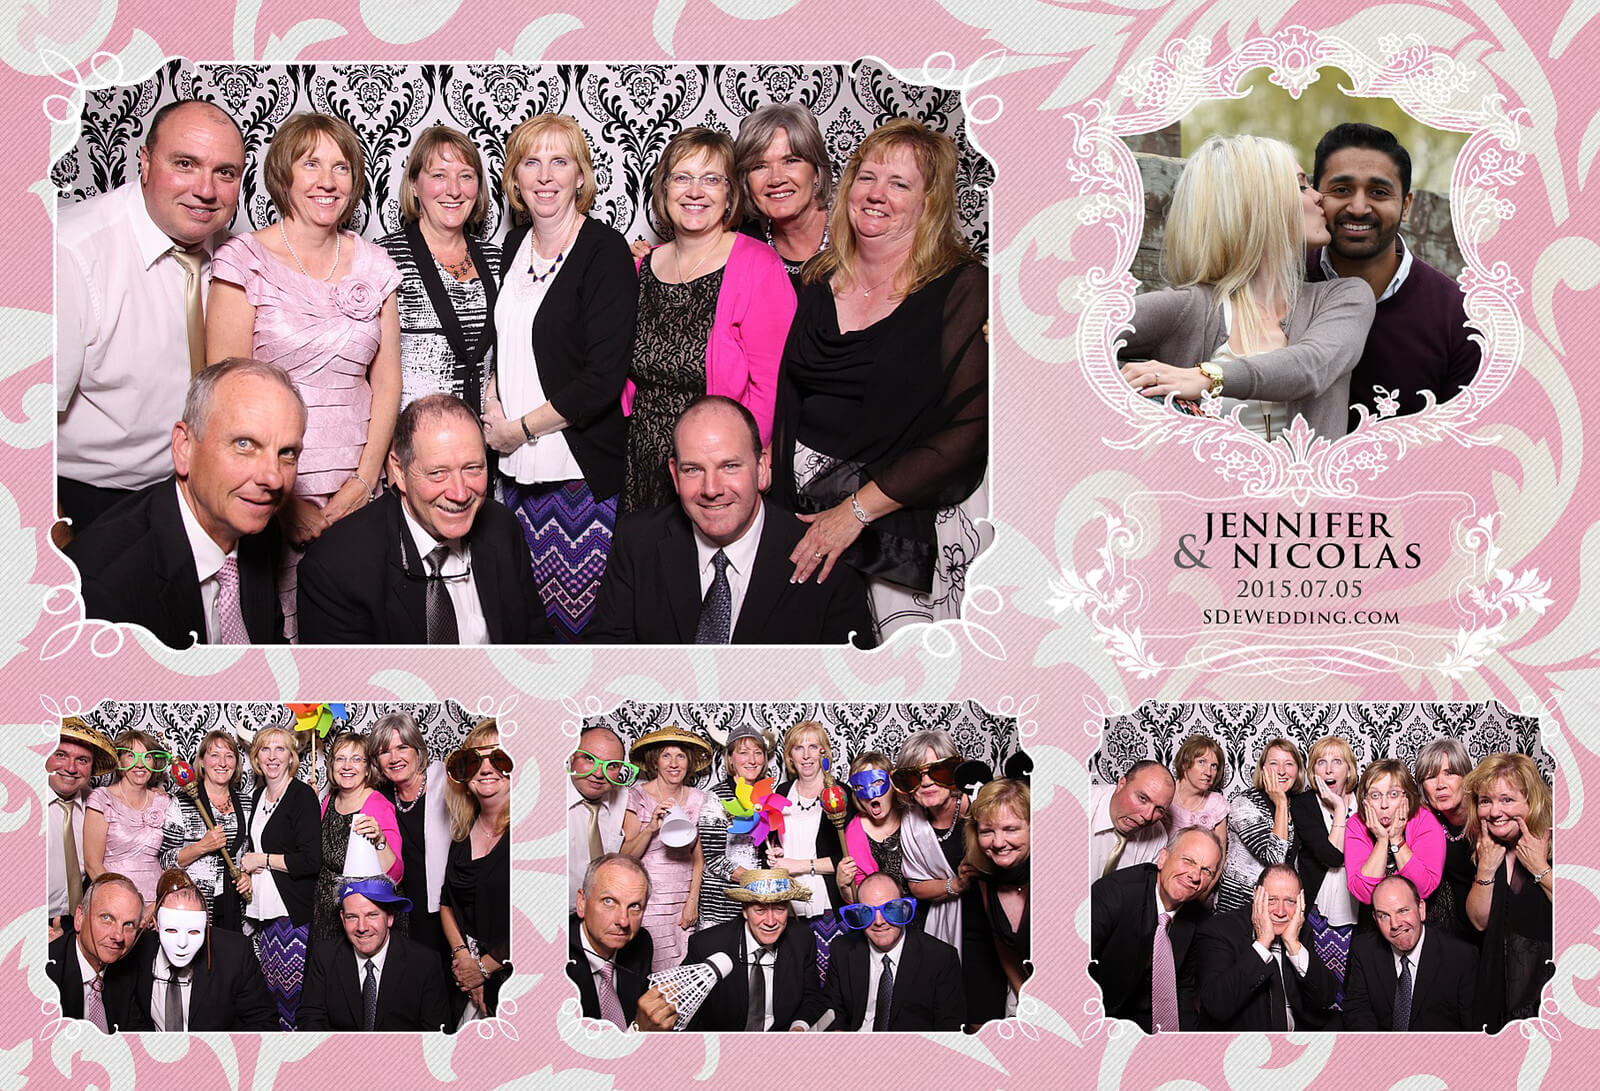 Toronto Liberty Grand Wedding Reception Photo Booth Rental 7